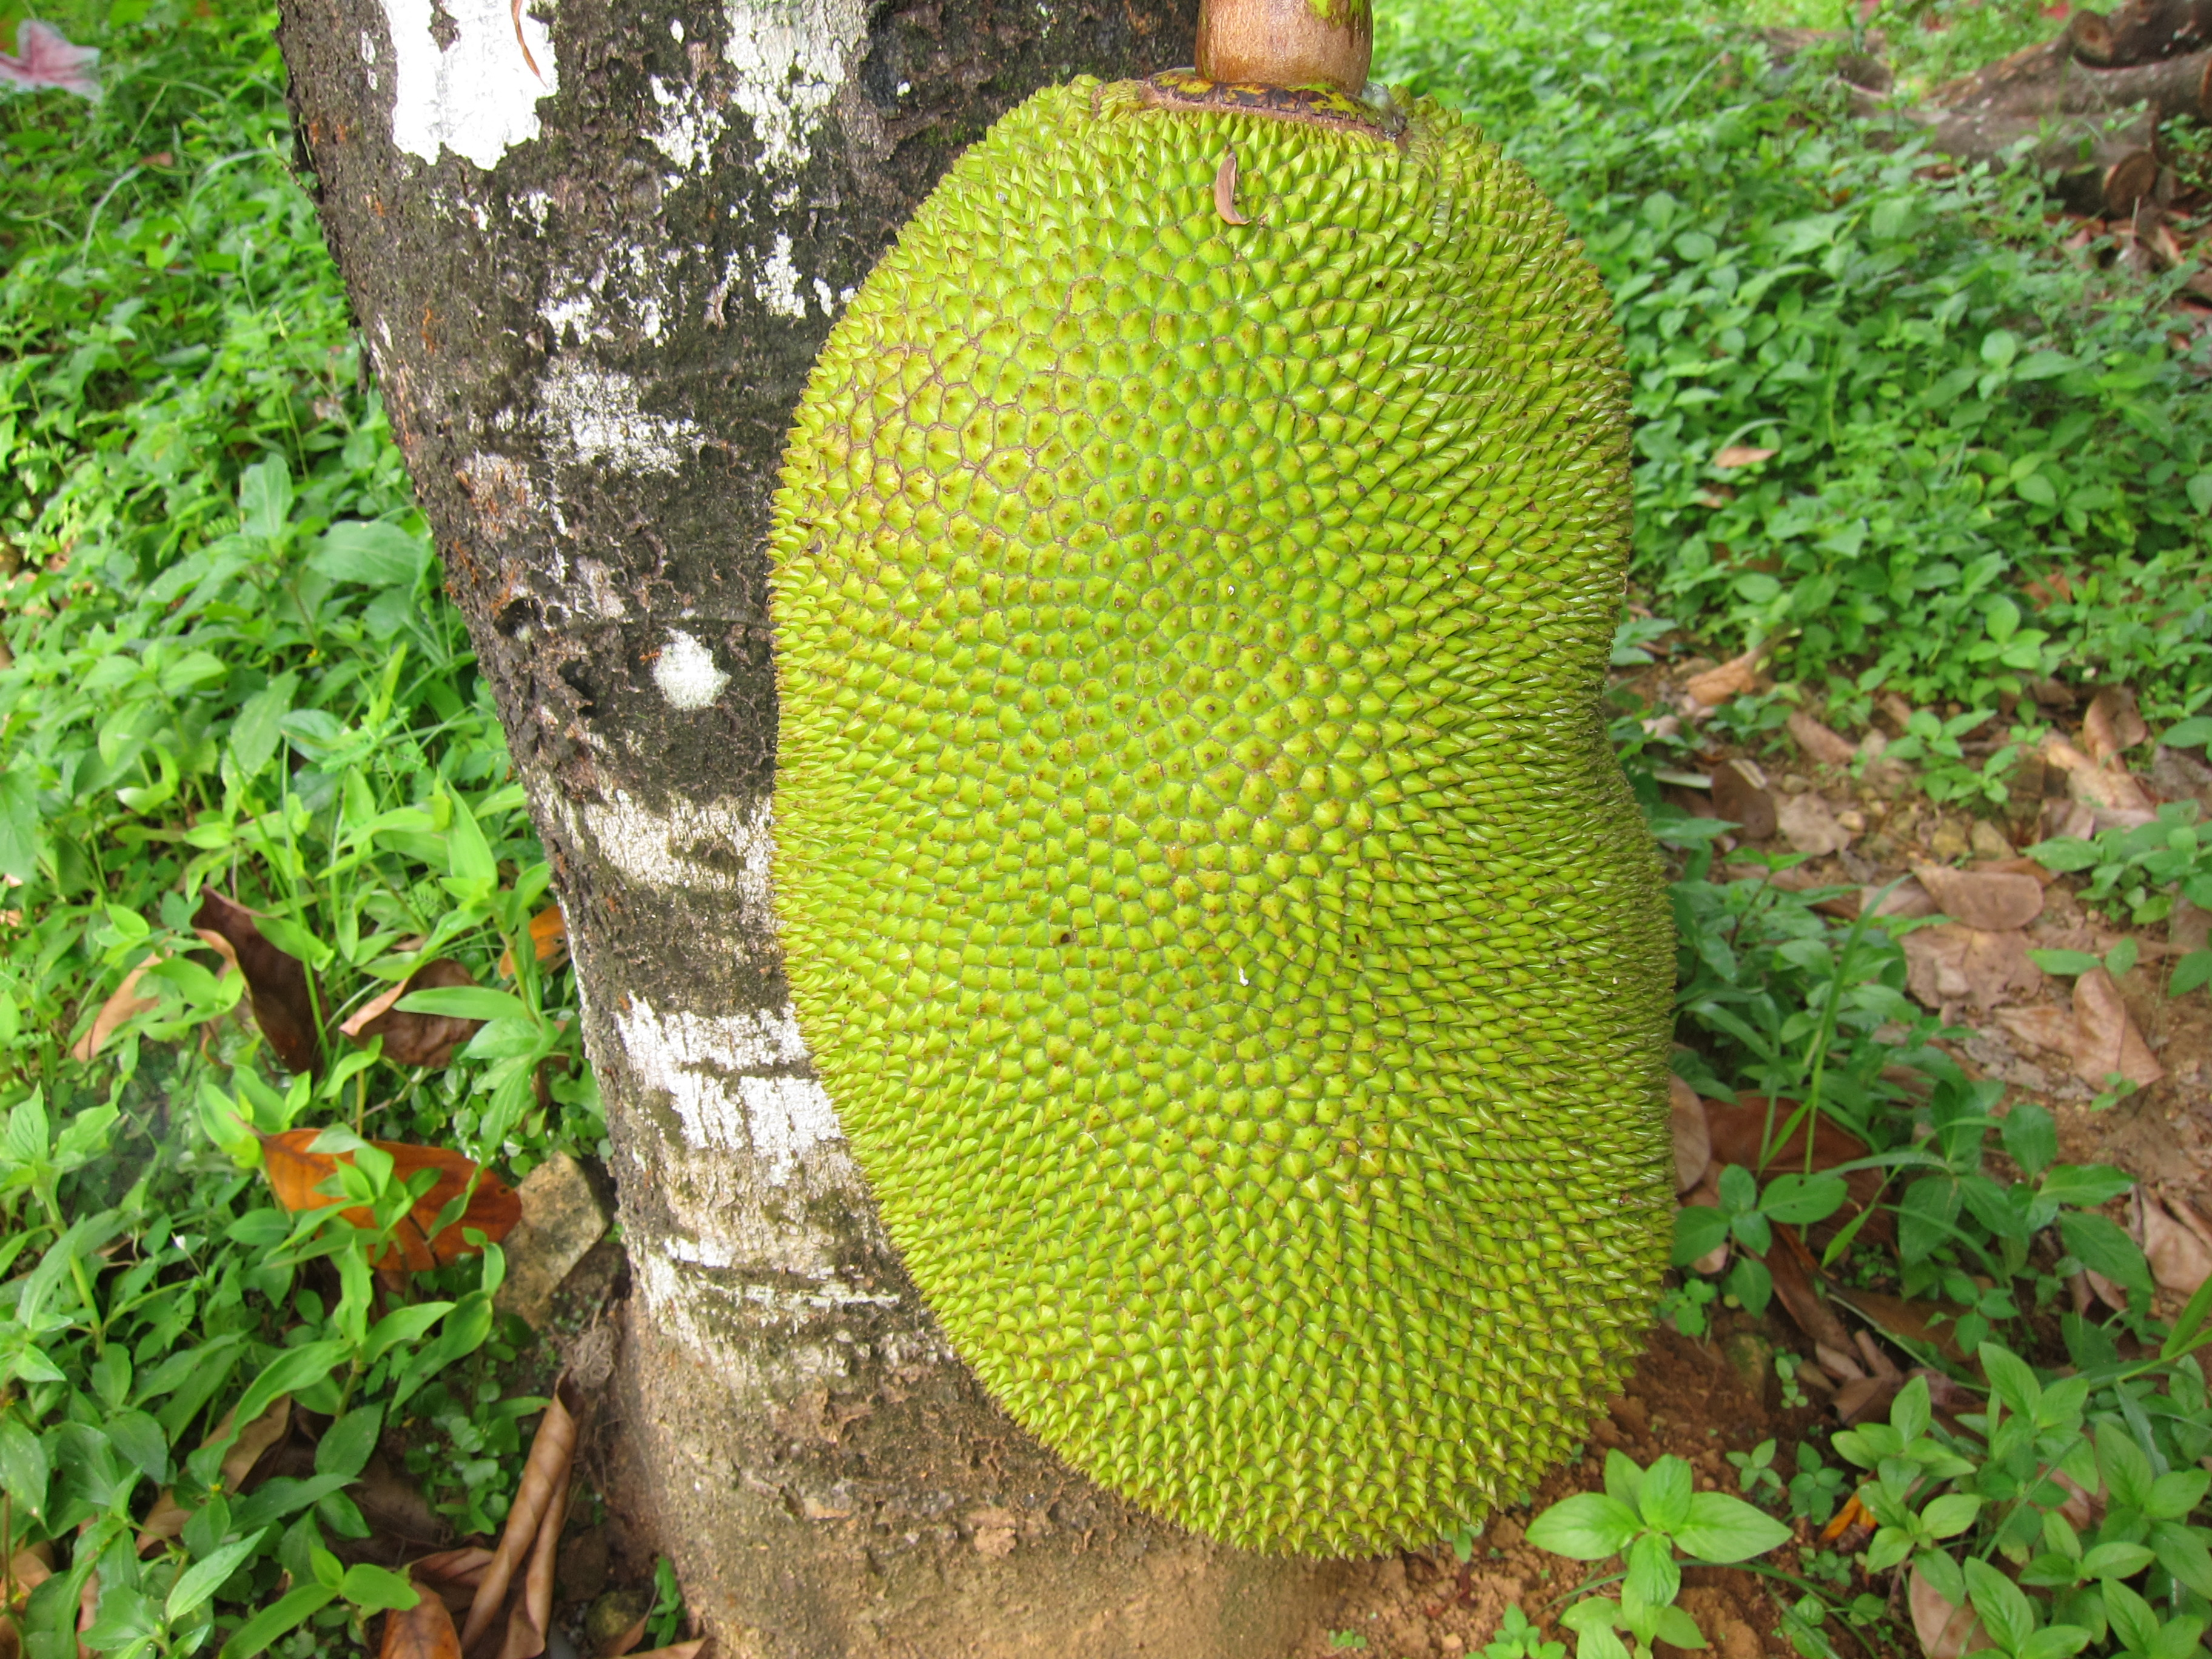 波羅蜜果。取自 Wikimedia Common https://commons.wikimedia.org/wiki/File:Jackfruit_ചക്ക.JPG